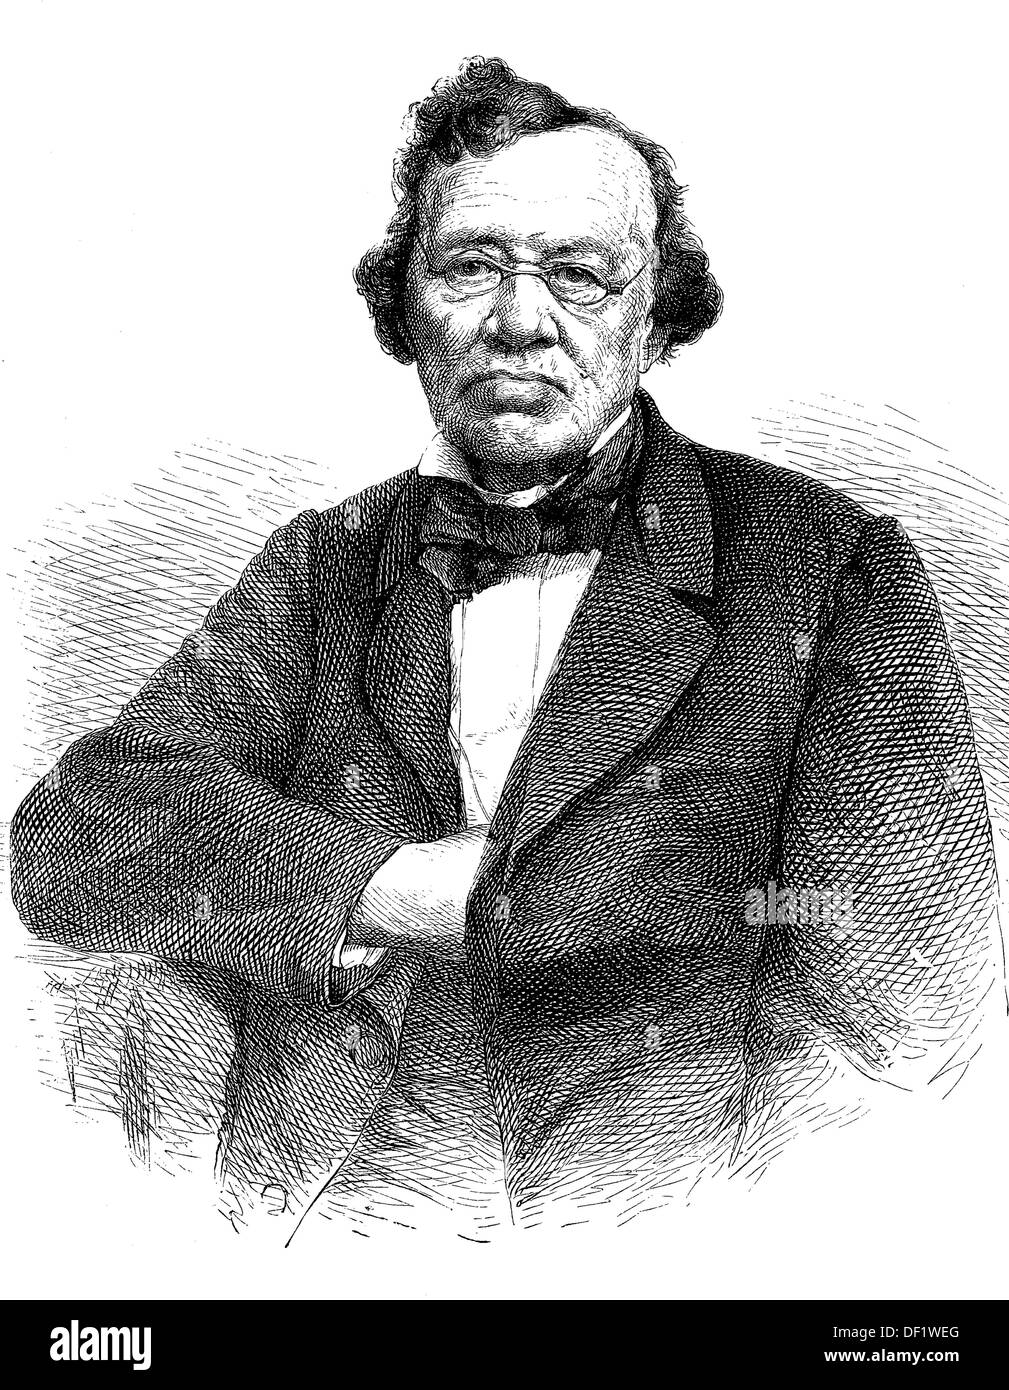 Karl Theodor von Küstner, 1784-1864, was a royal Bavarian Privy Councillor and Court Theatre artistic director., Woodcut from 18 - Stock Image